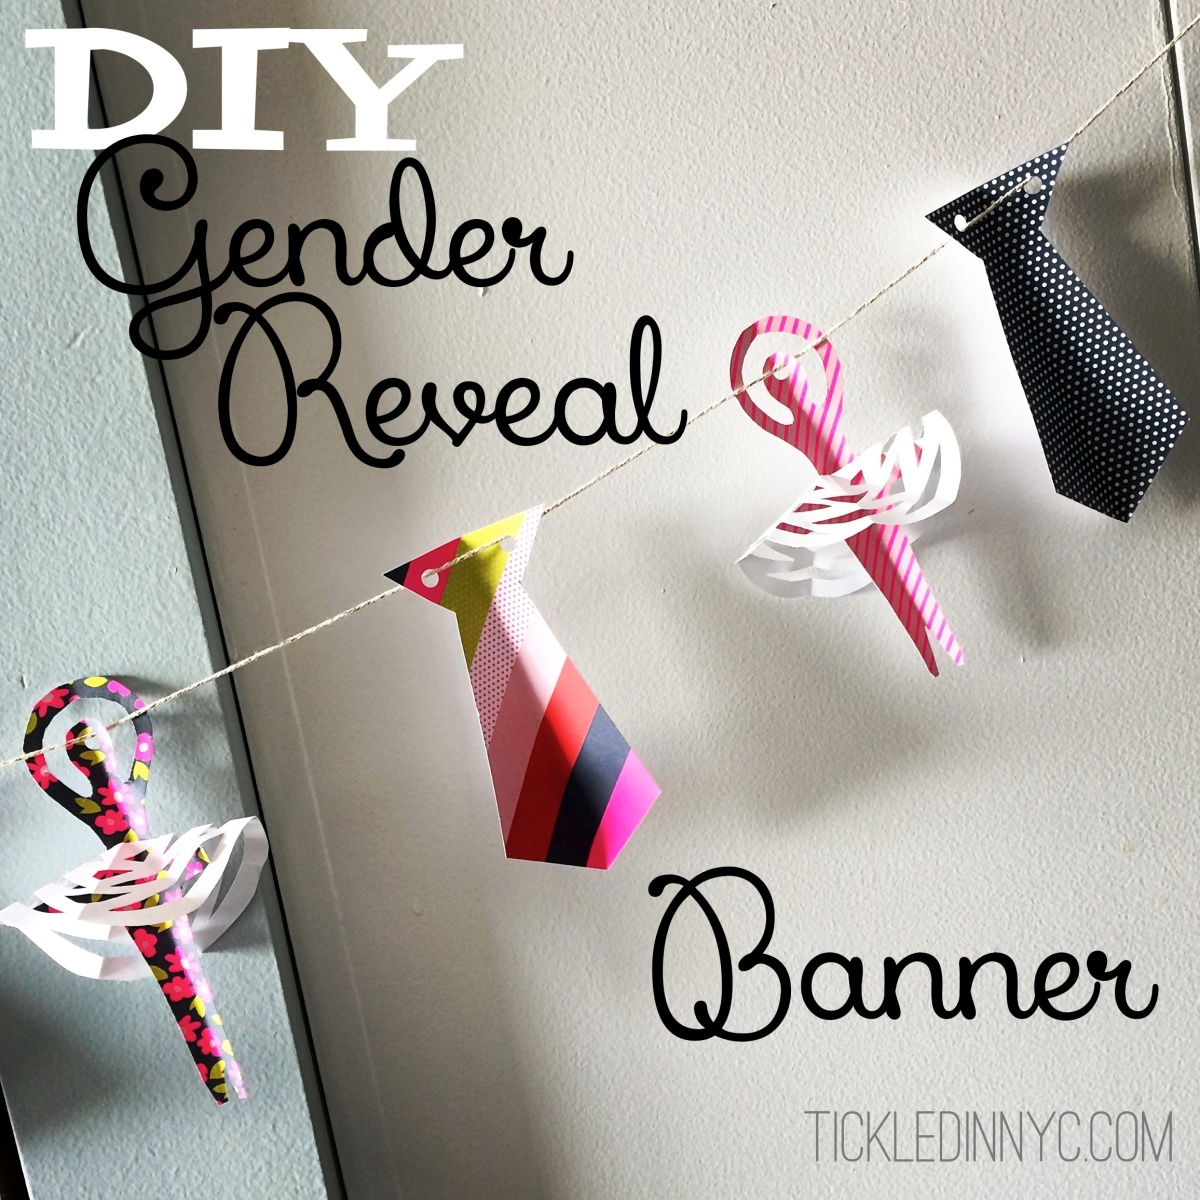 Ties or Tutus: My DIY Gender Reveal